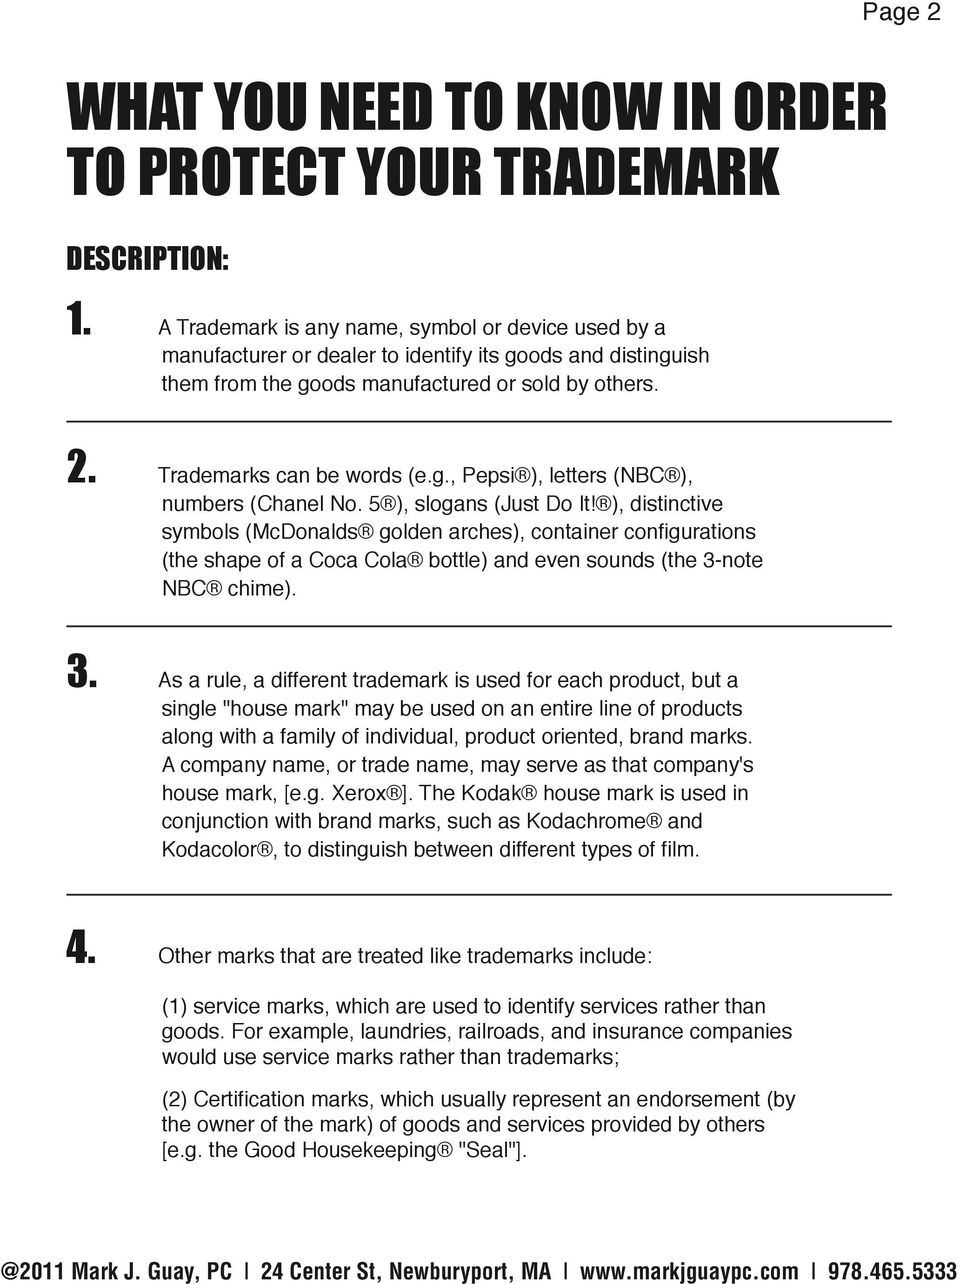 WHAT YOU NEED TO KNOW IN ORDER TO PROTECT YOUR TRADEMARK - PDF